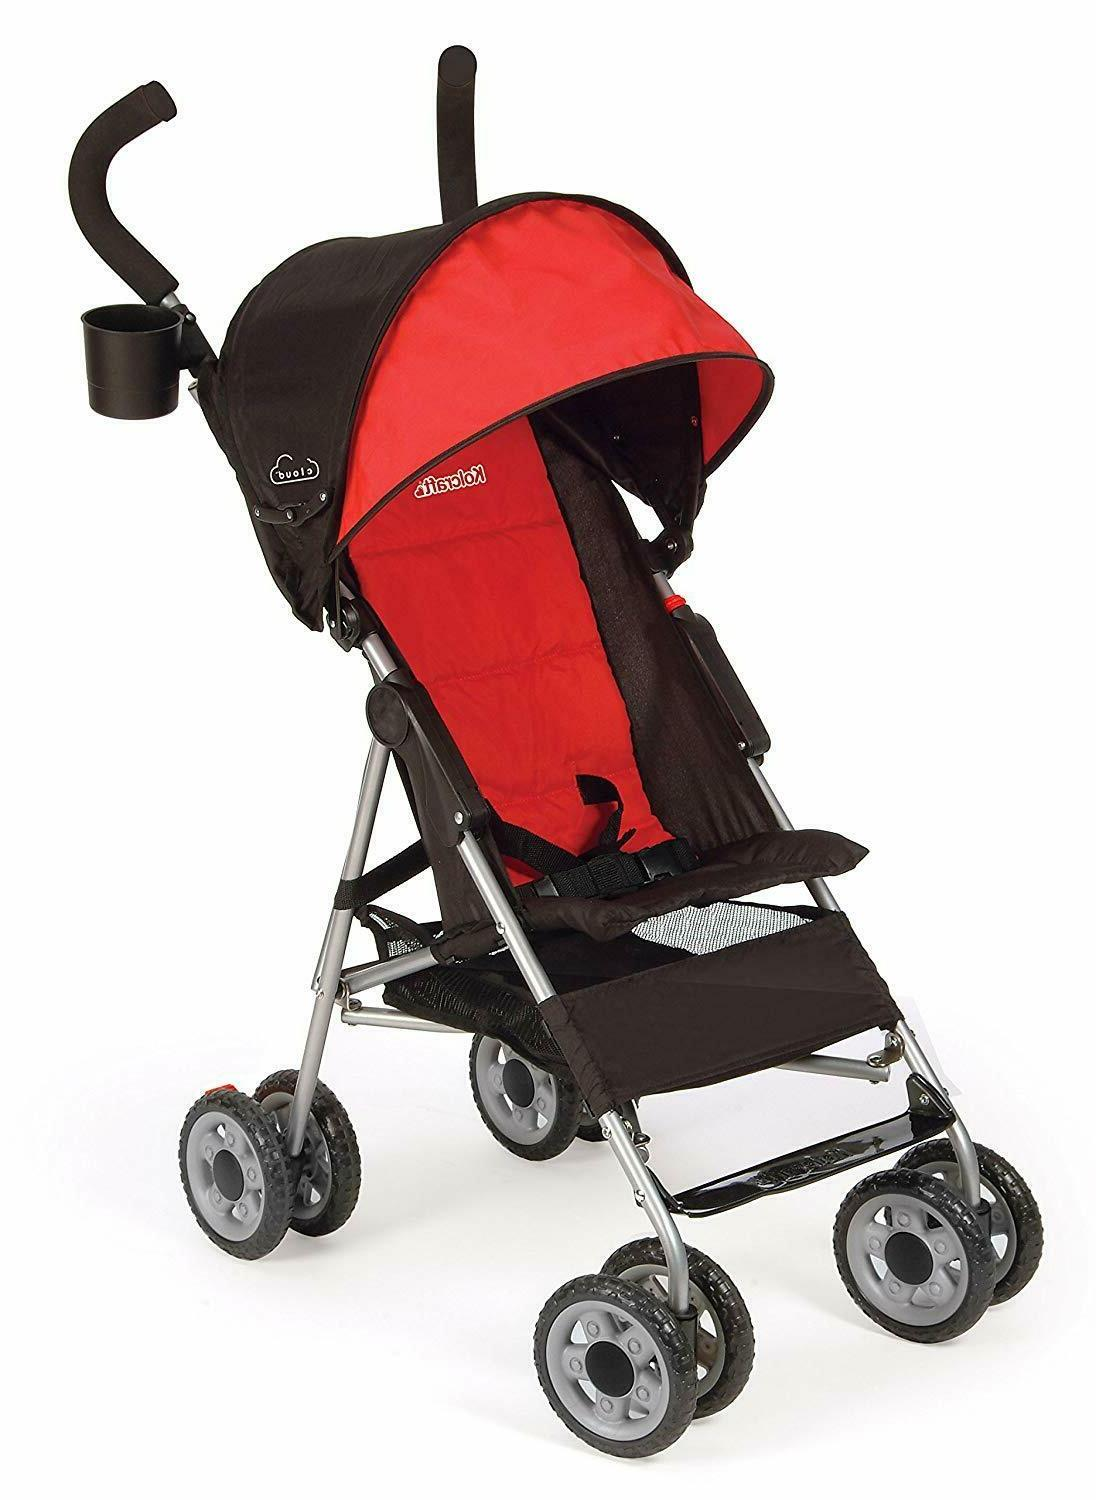 Kolcraft Stroller with Large Canopy, Red